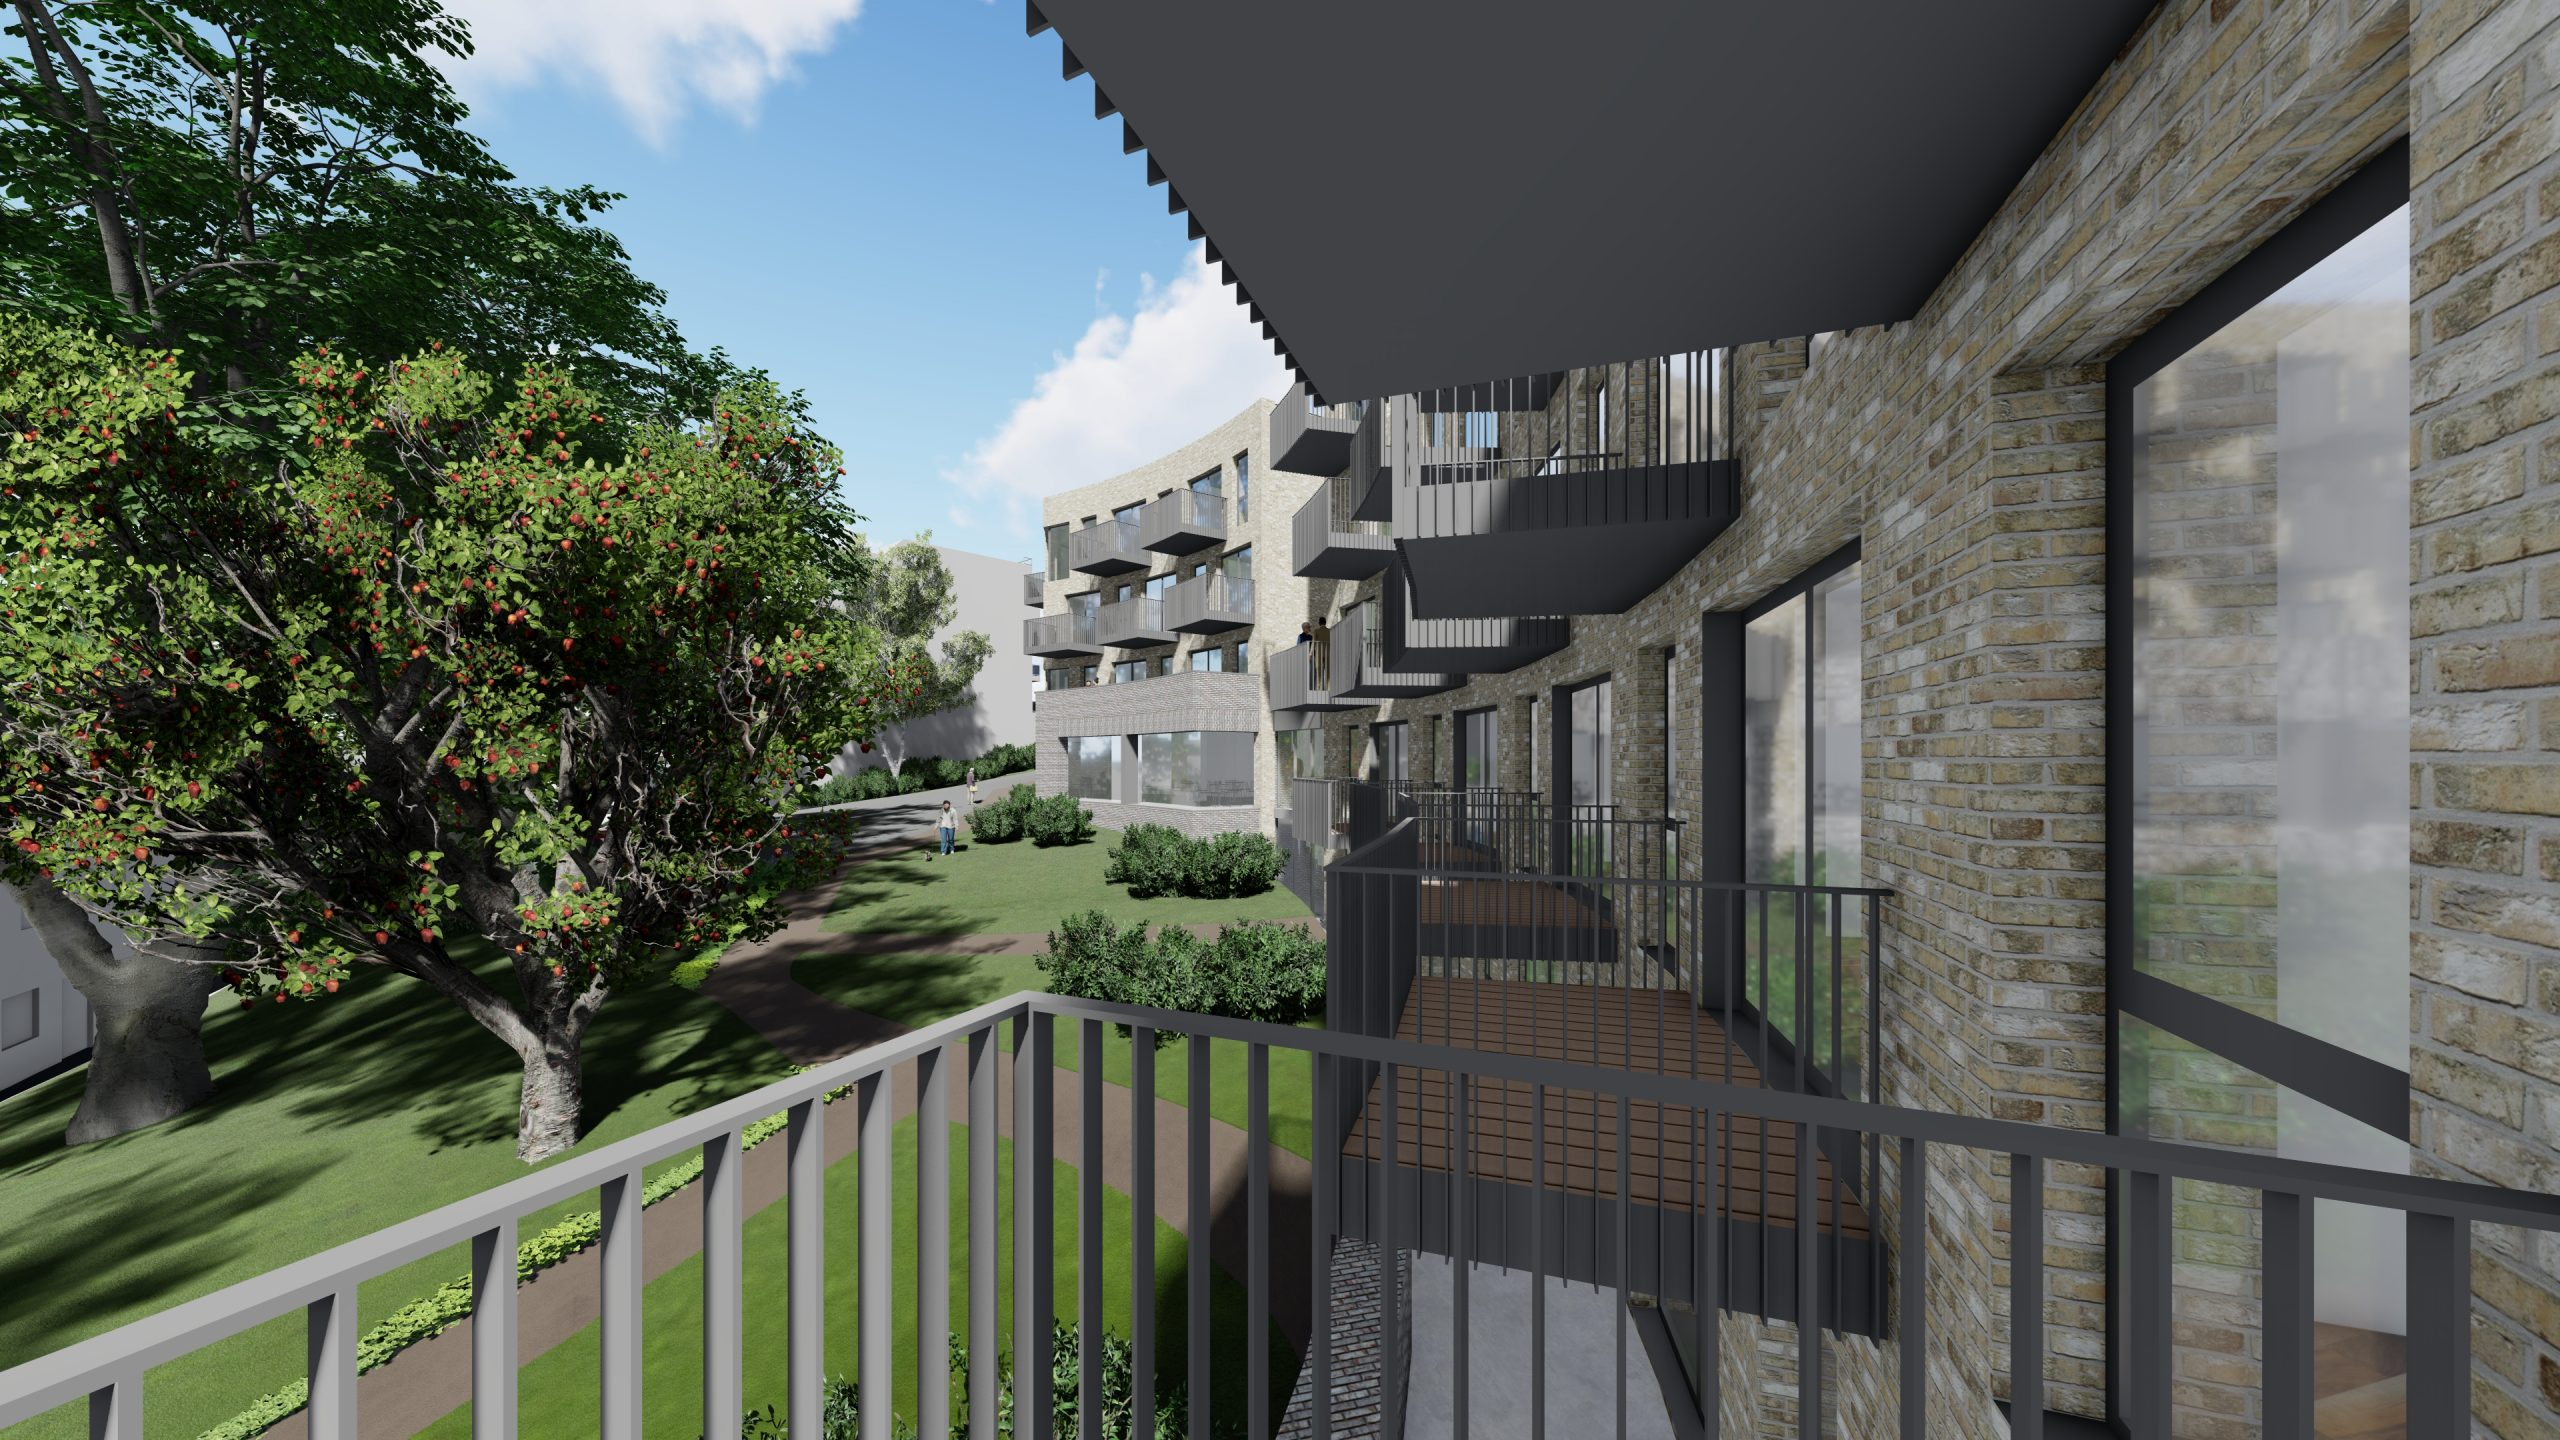 Community consultation begins on new Retirement Living homes in Richmond upon Thames